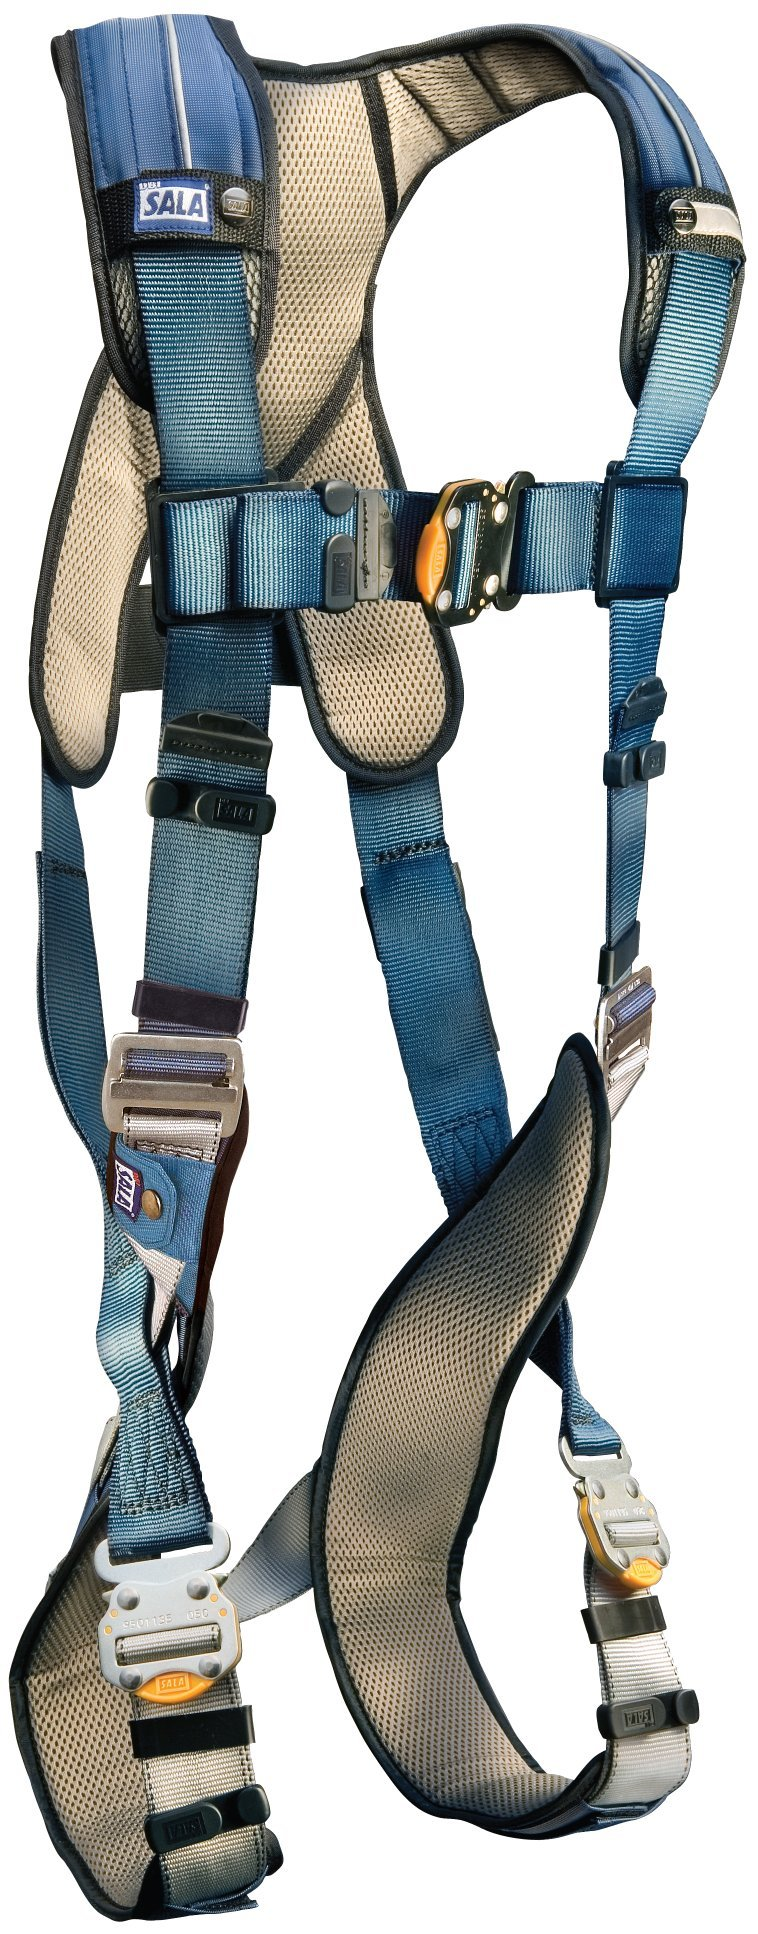 3M DBI-SALA, ExoFit, 1110102 Fall Protection Full Body Harness, with Back D-Ring, Quick Connect Buckle Legs, 420  lb. Capacity, Large, Gray/Blue